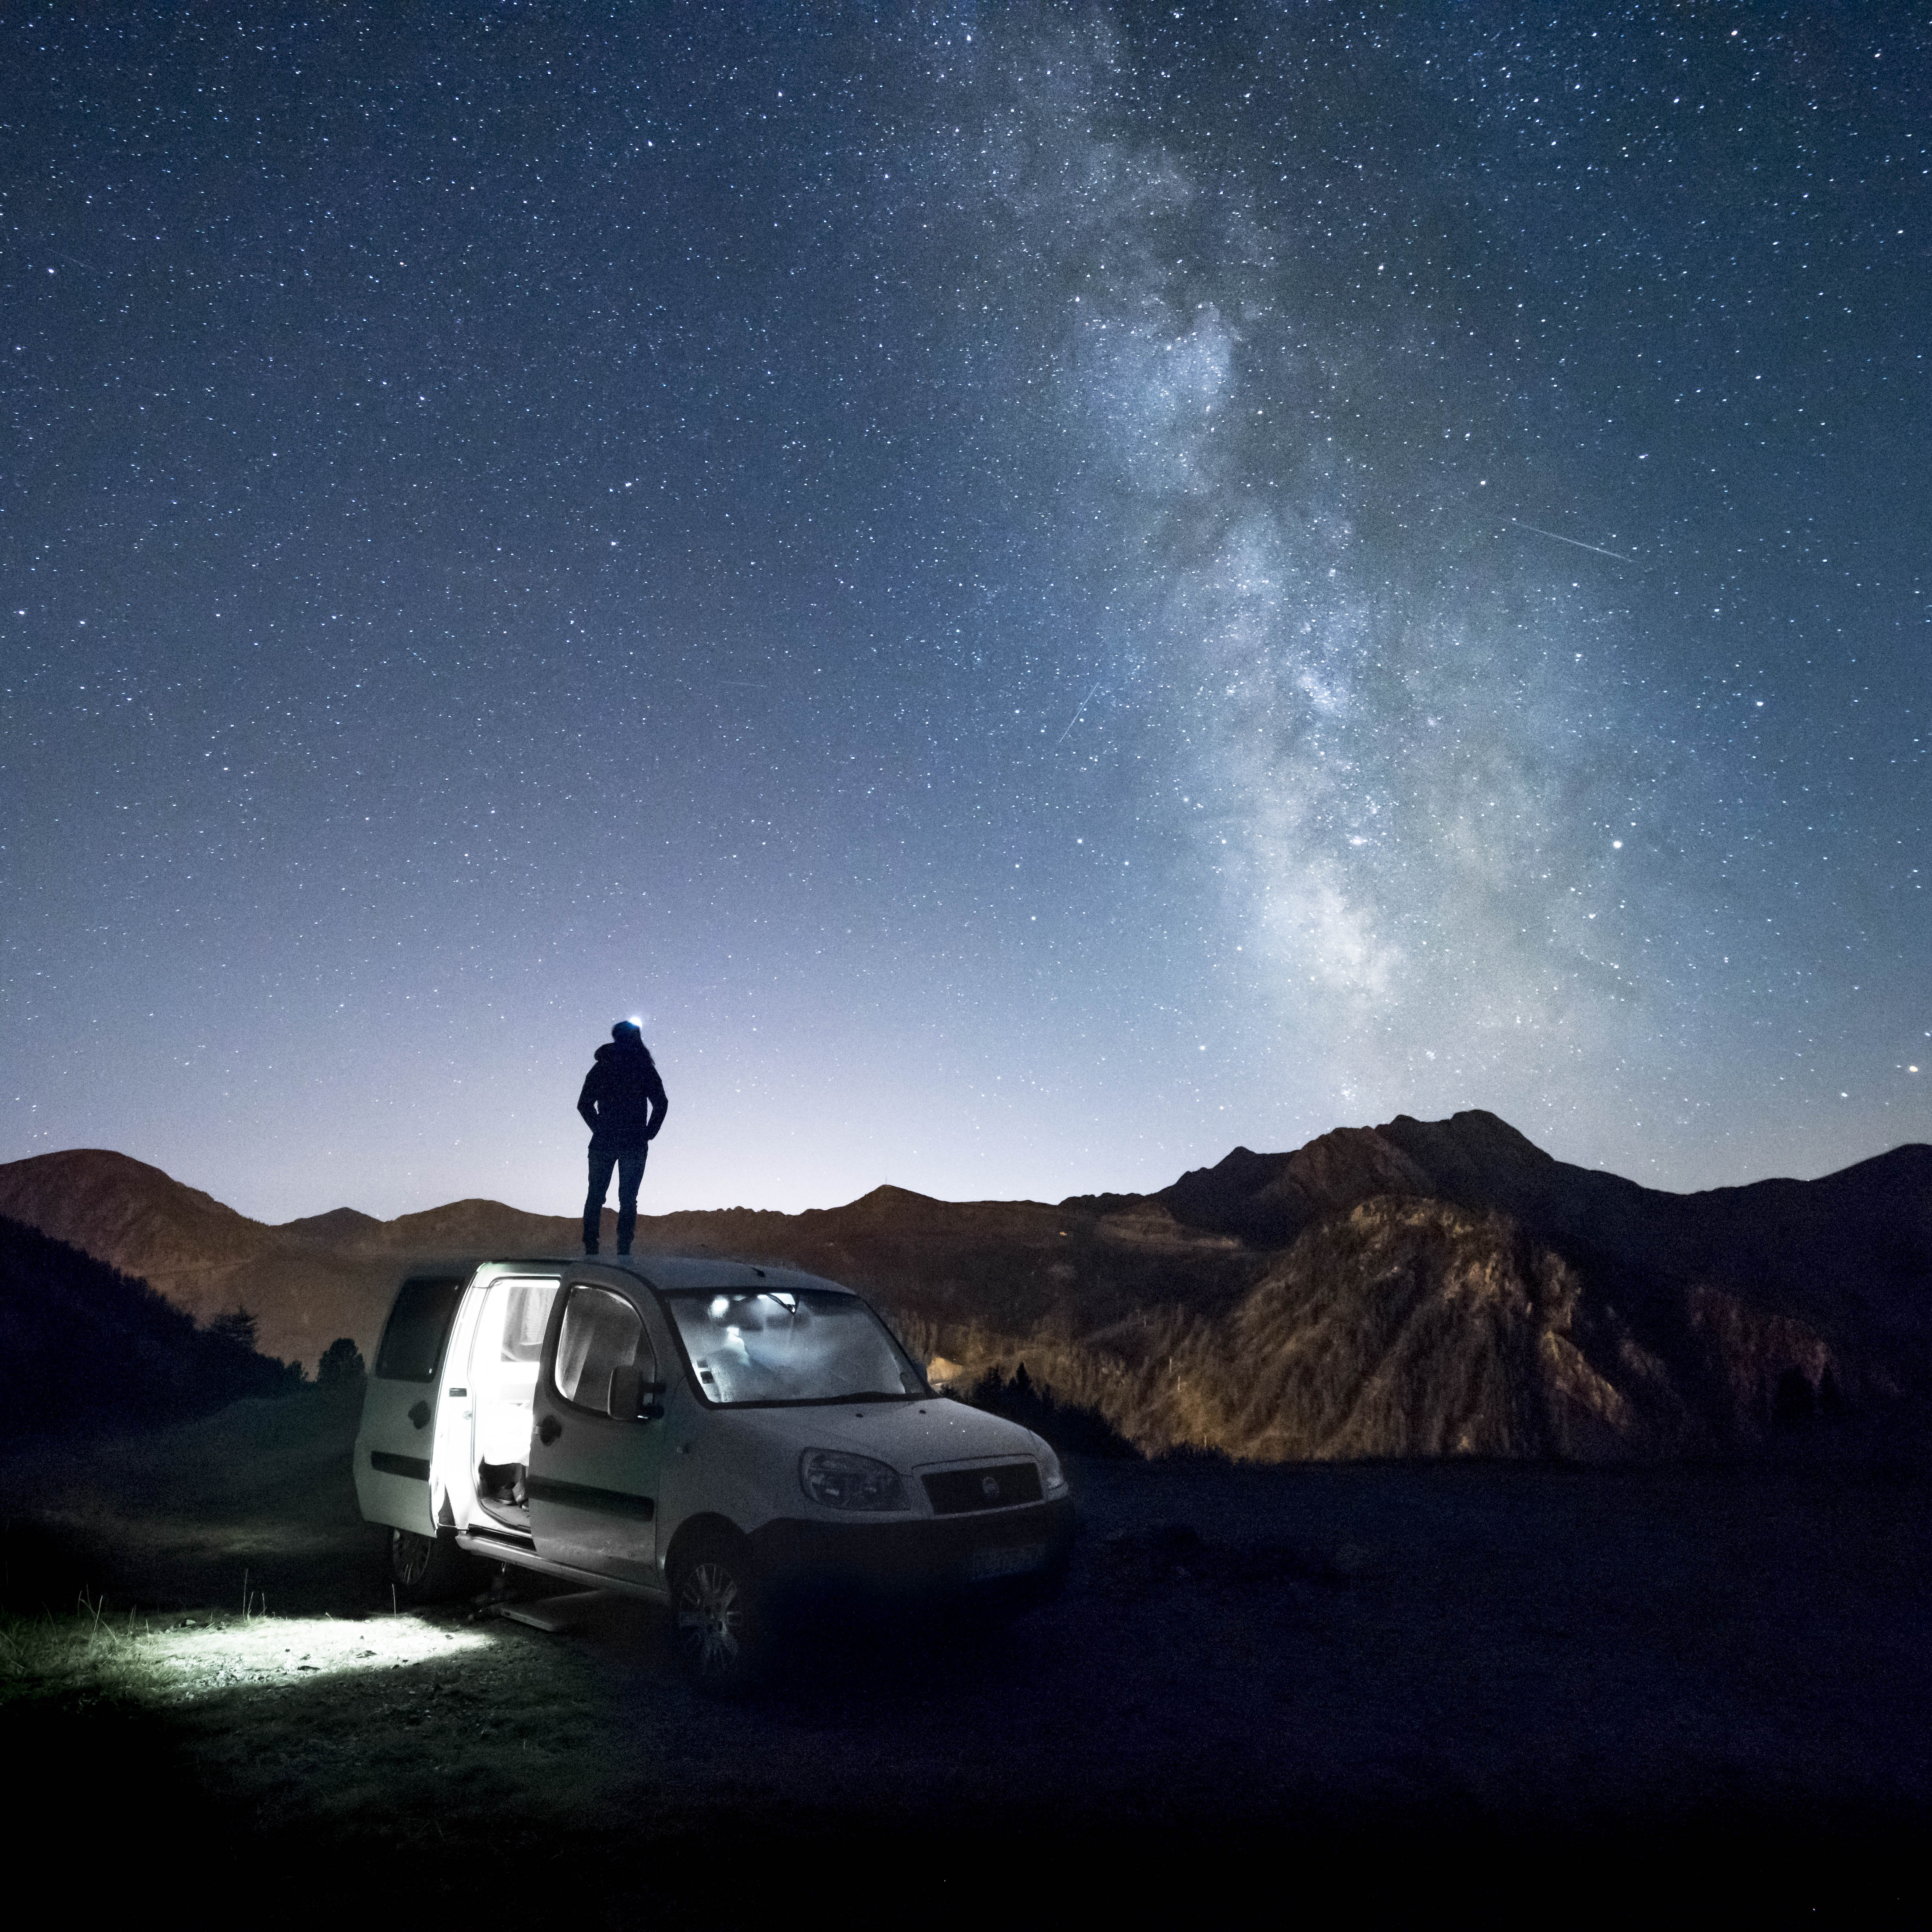 man standing on white minivan looking at mountain under milkyway